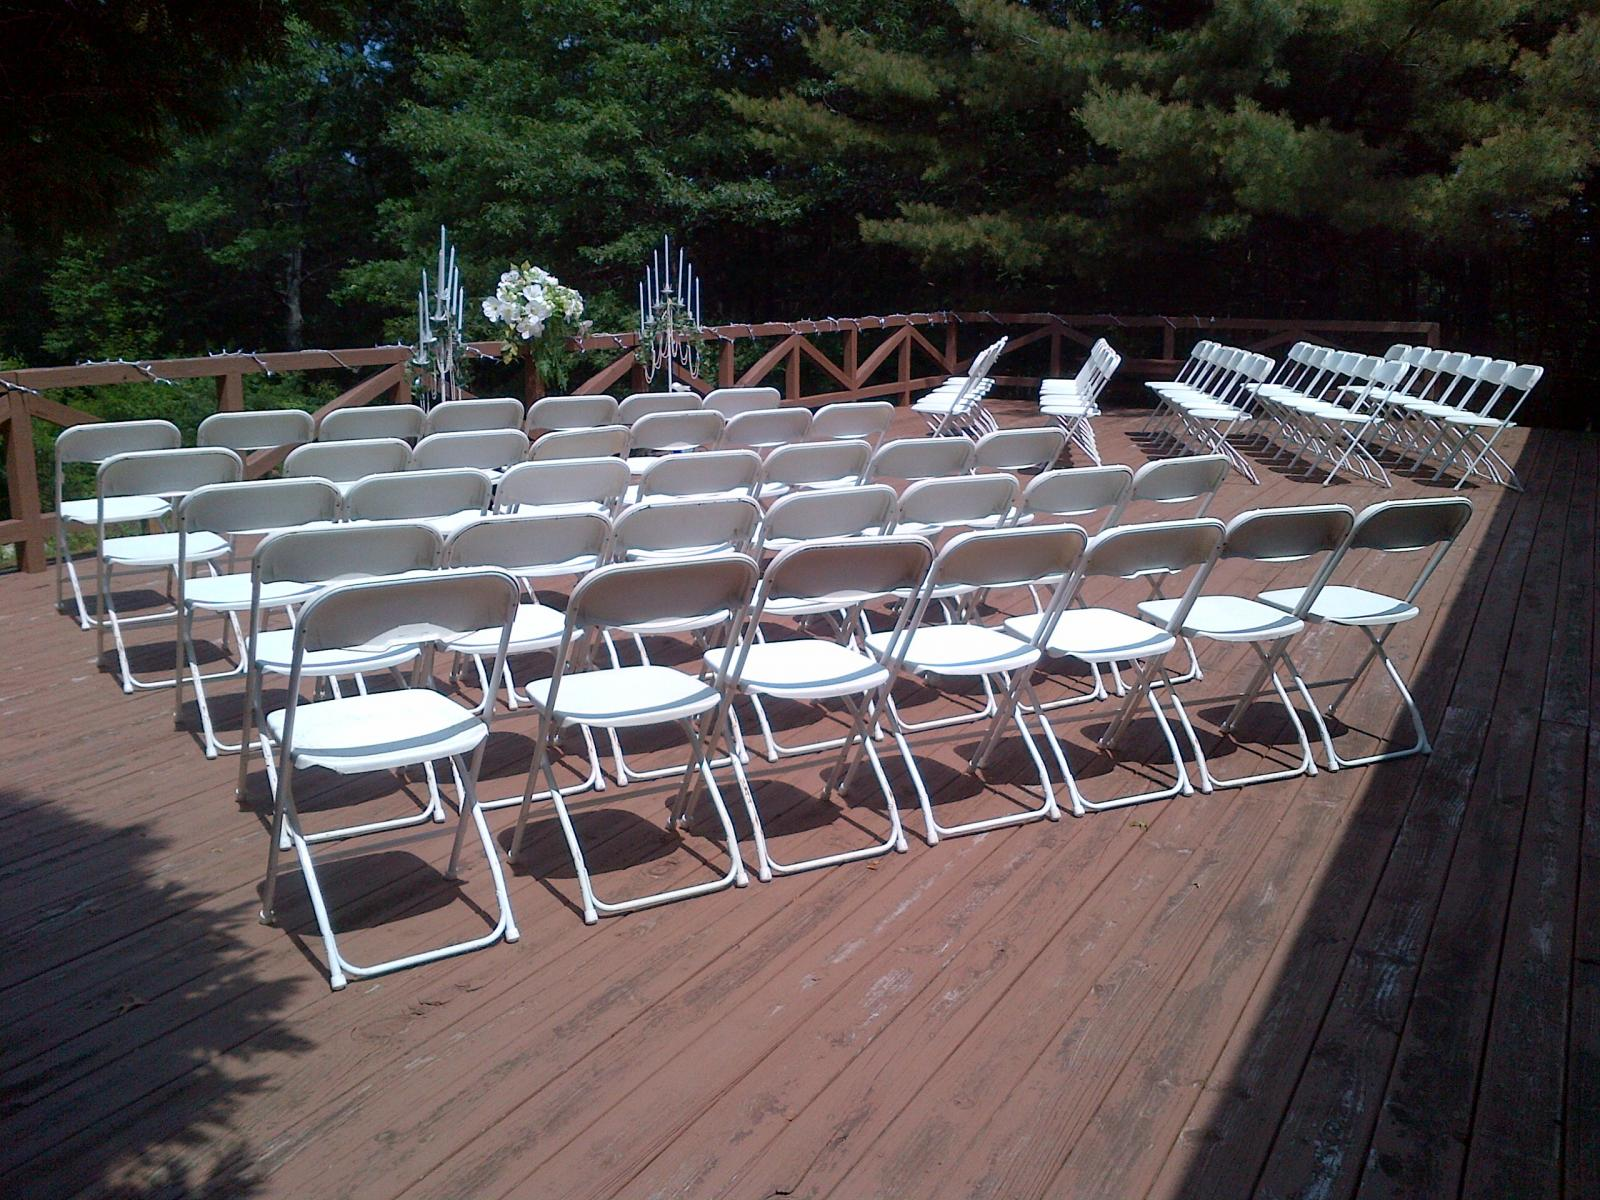 Dining Hall porch set for ceremony